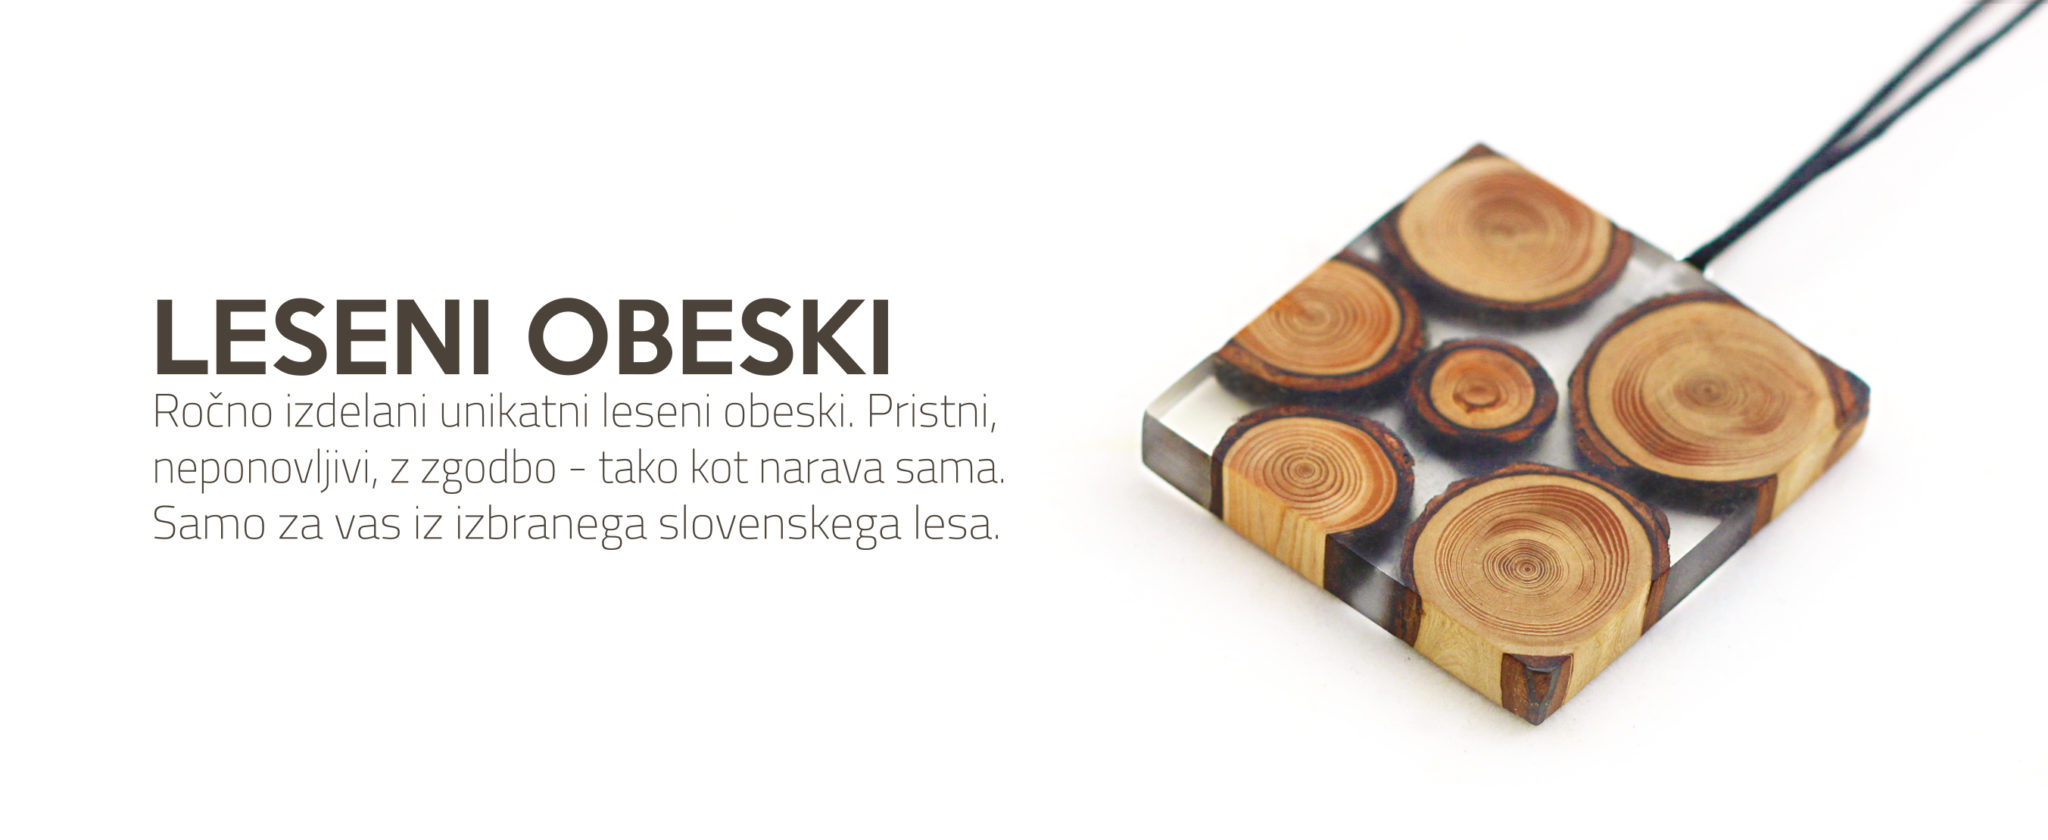 Slider_obesek_text_1